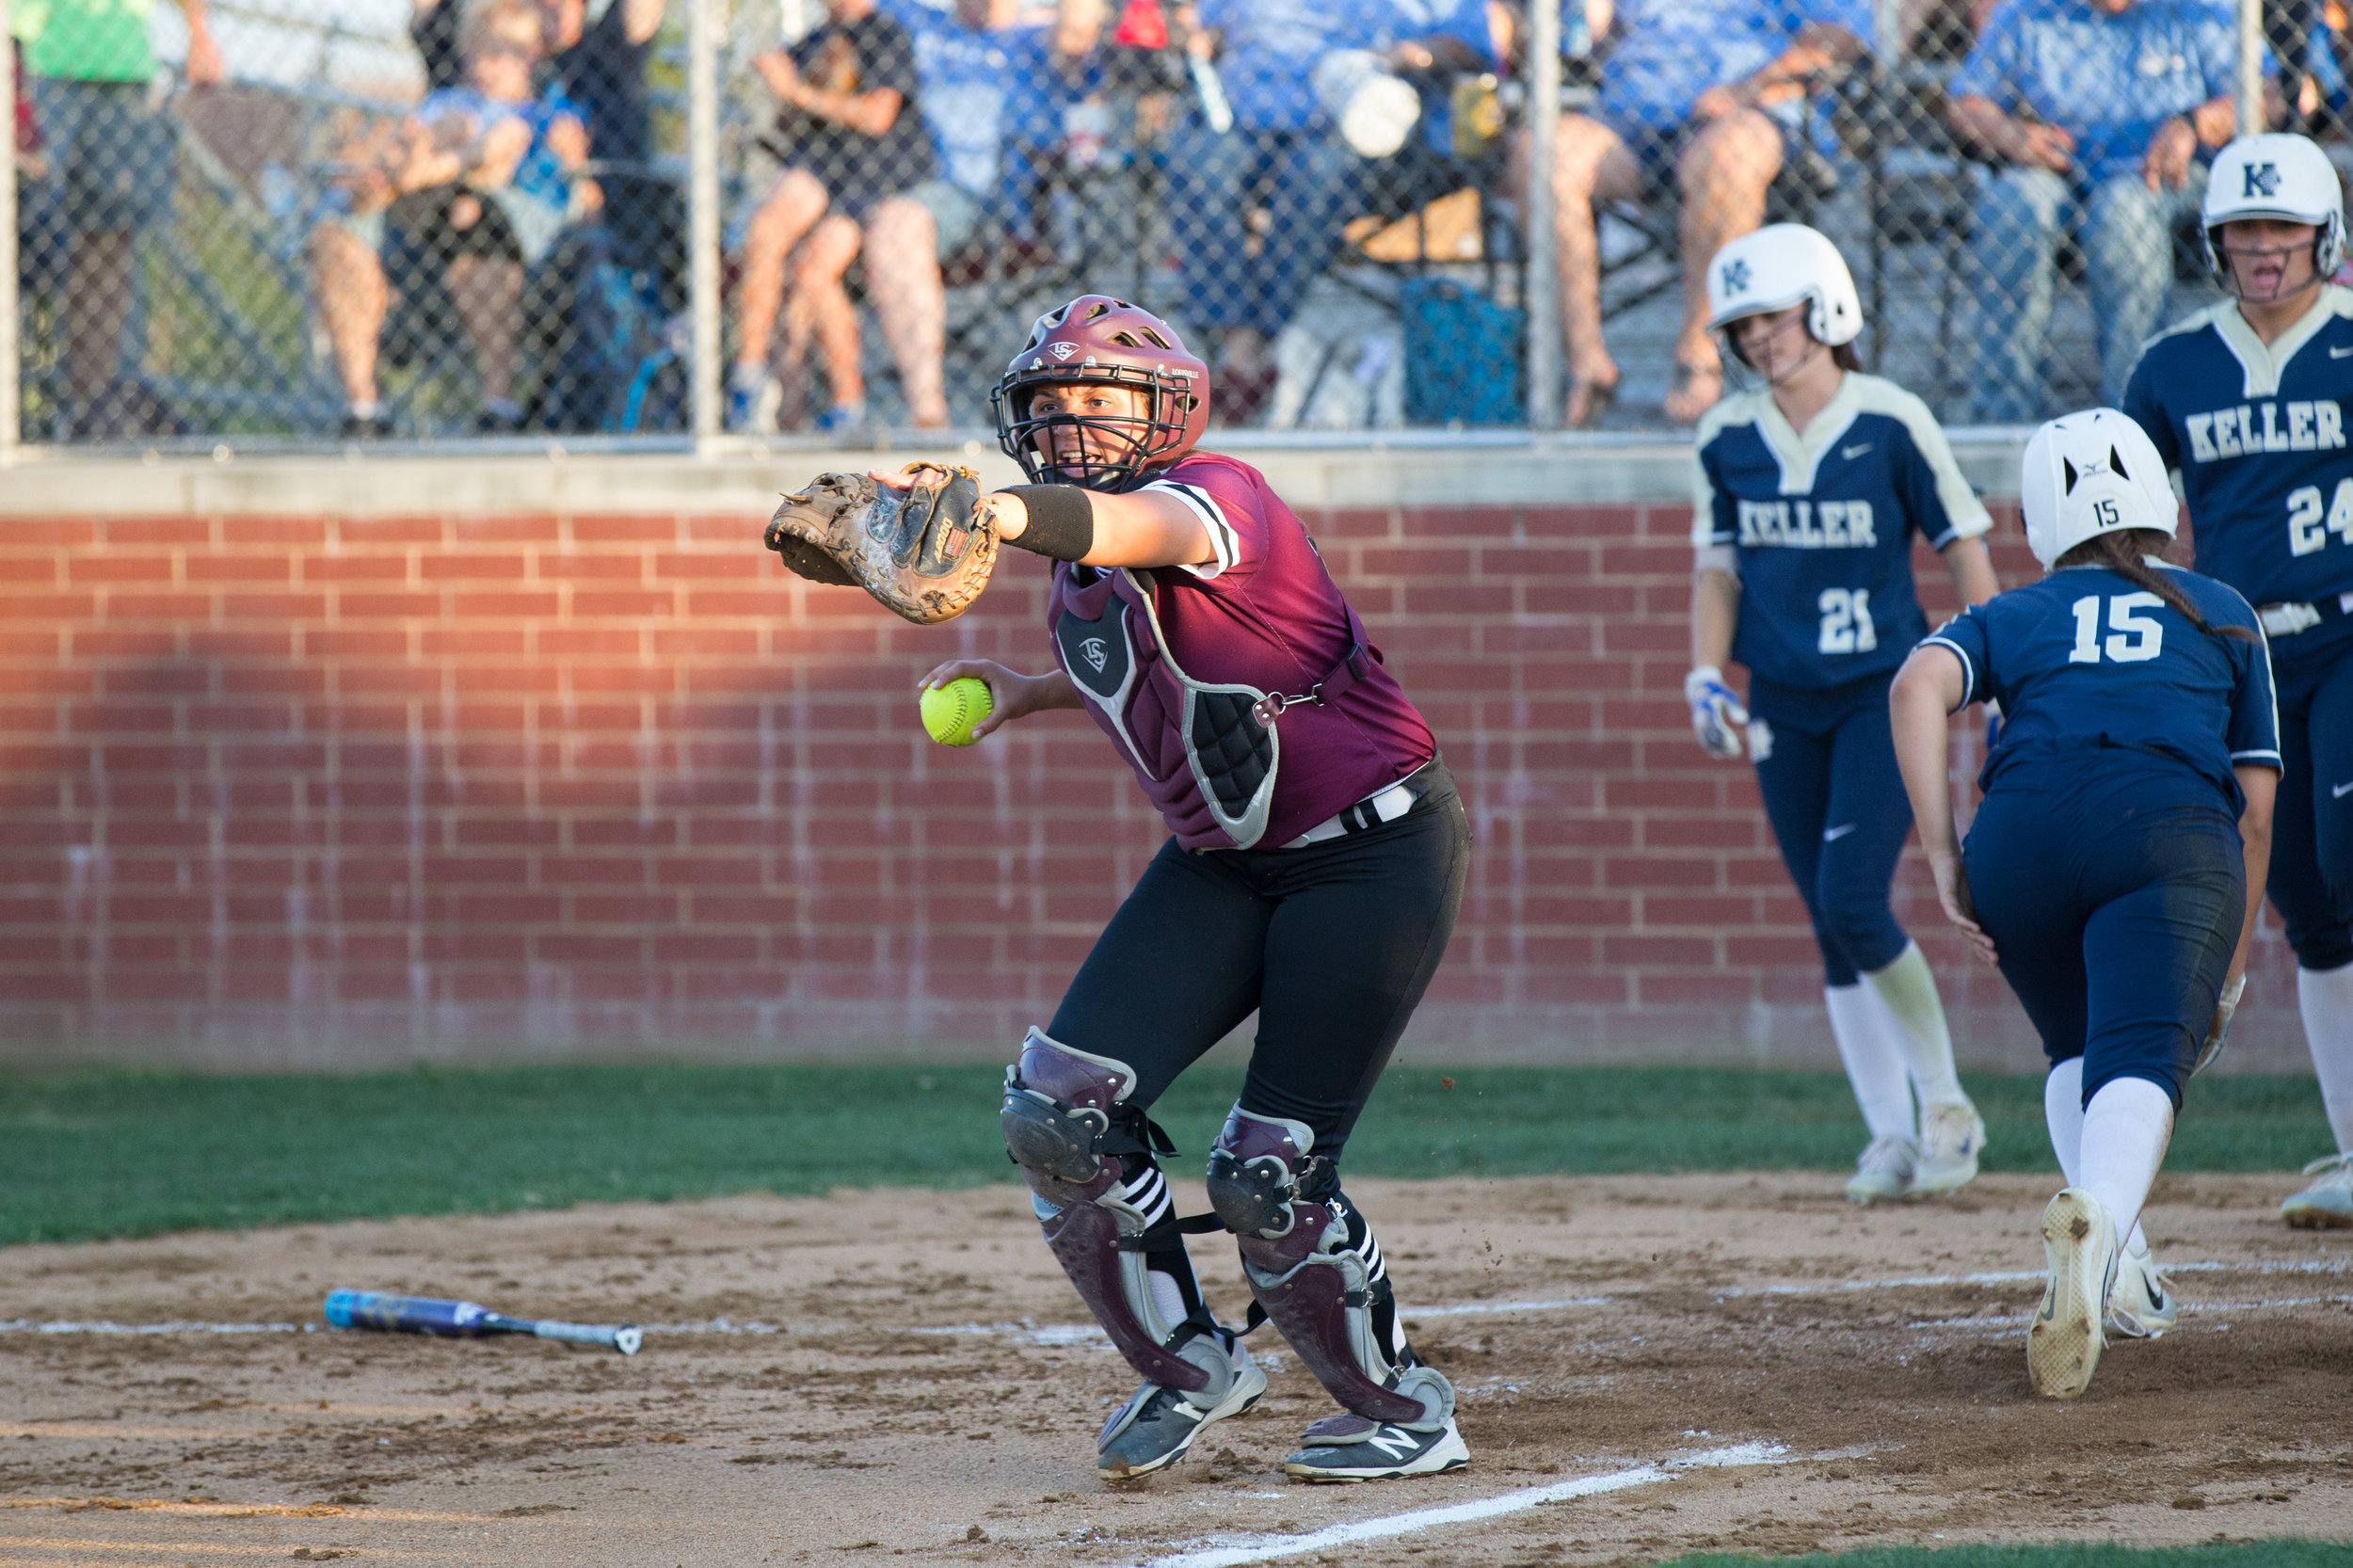 5_18 Wylie Softball-137.jpg